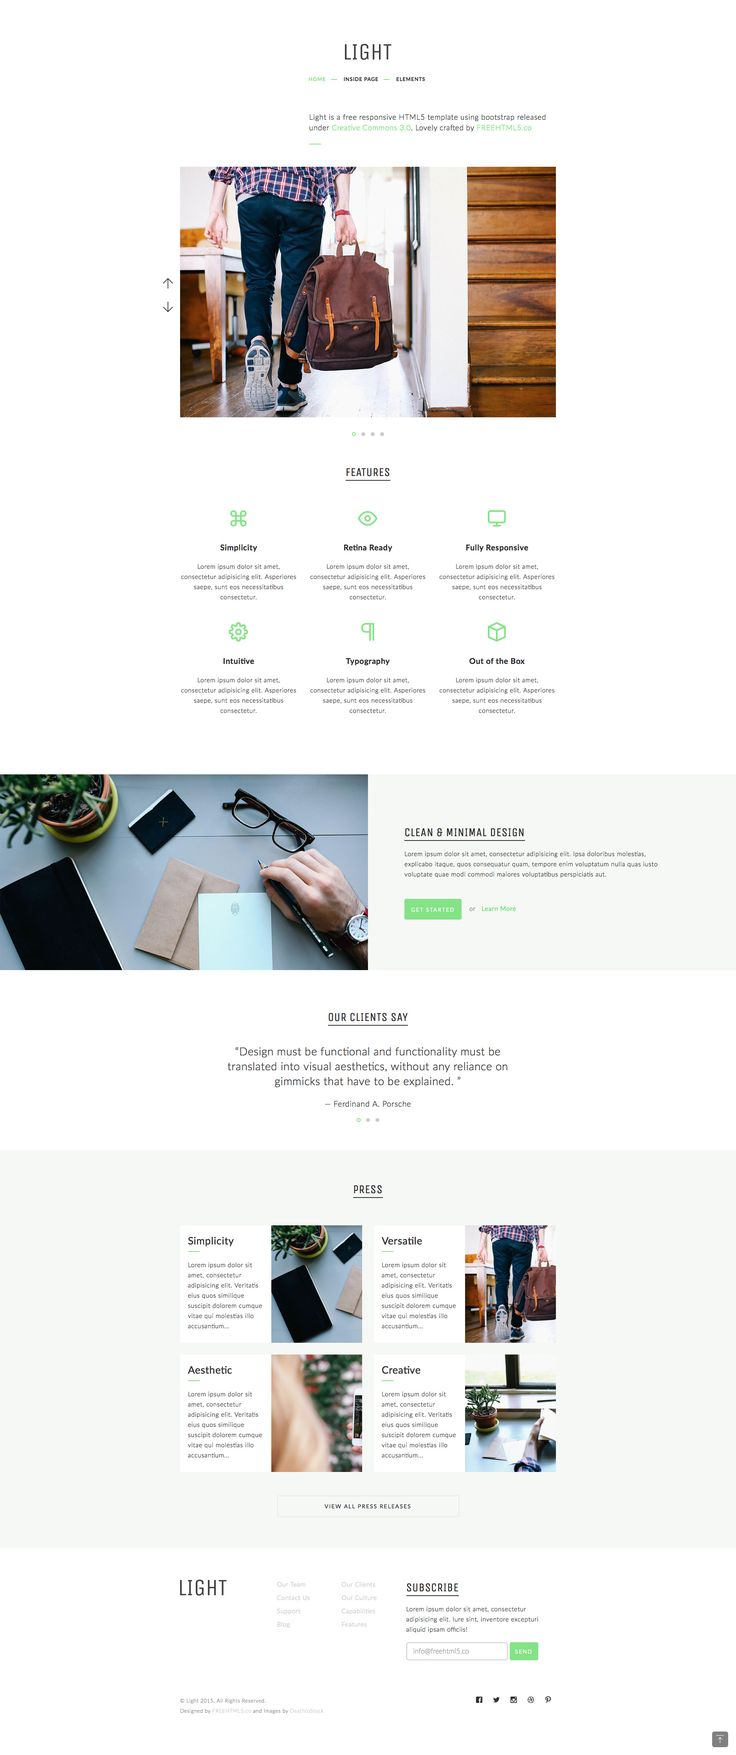 Light is a free responsive HTML5 Bootstrap